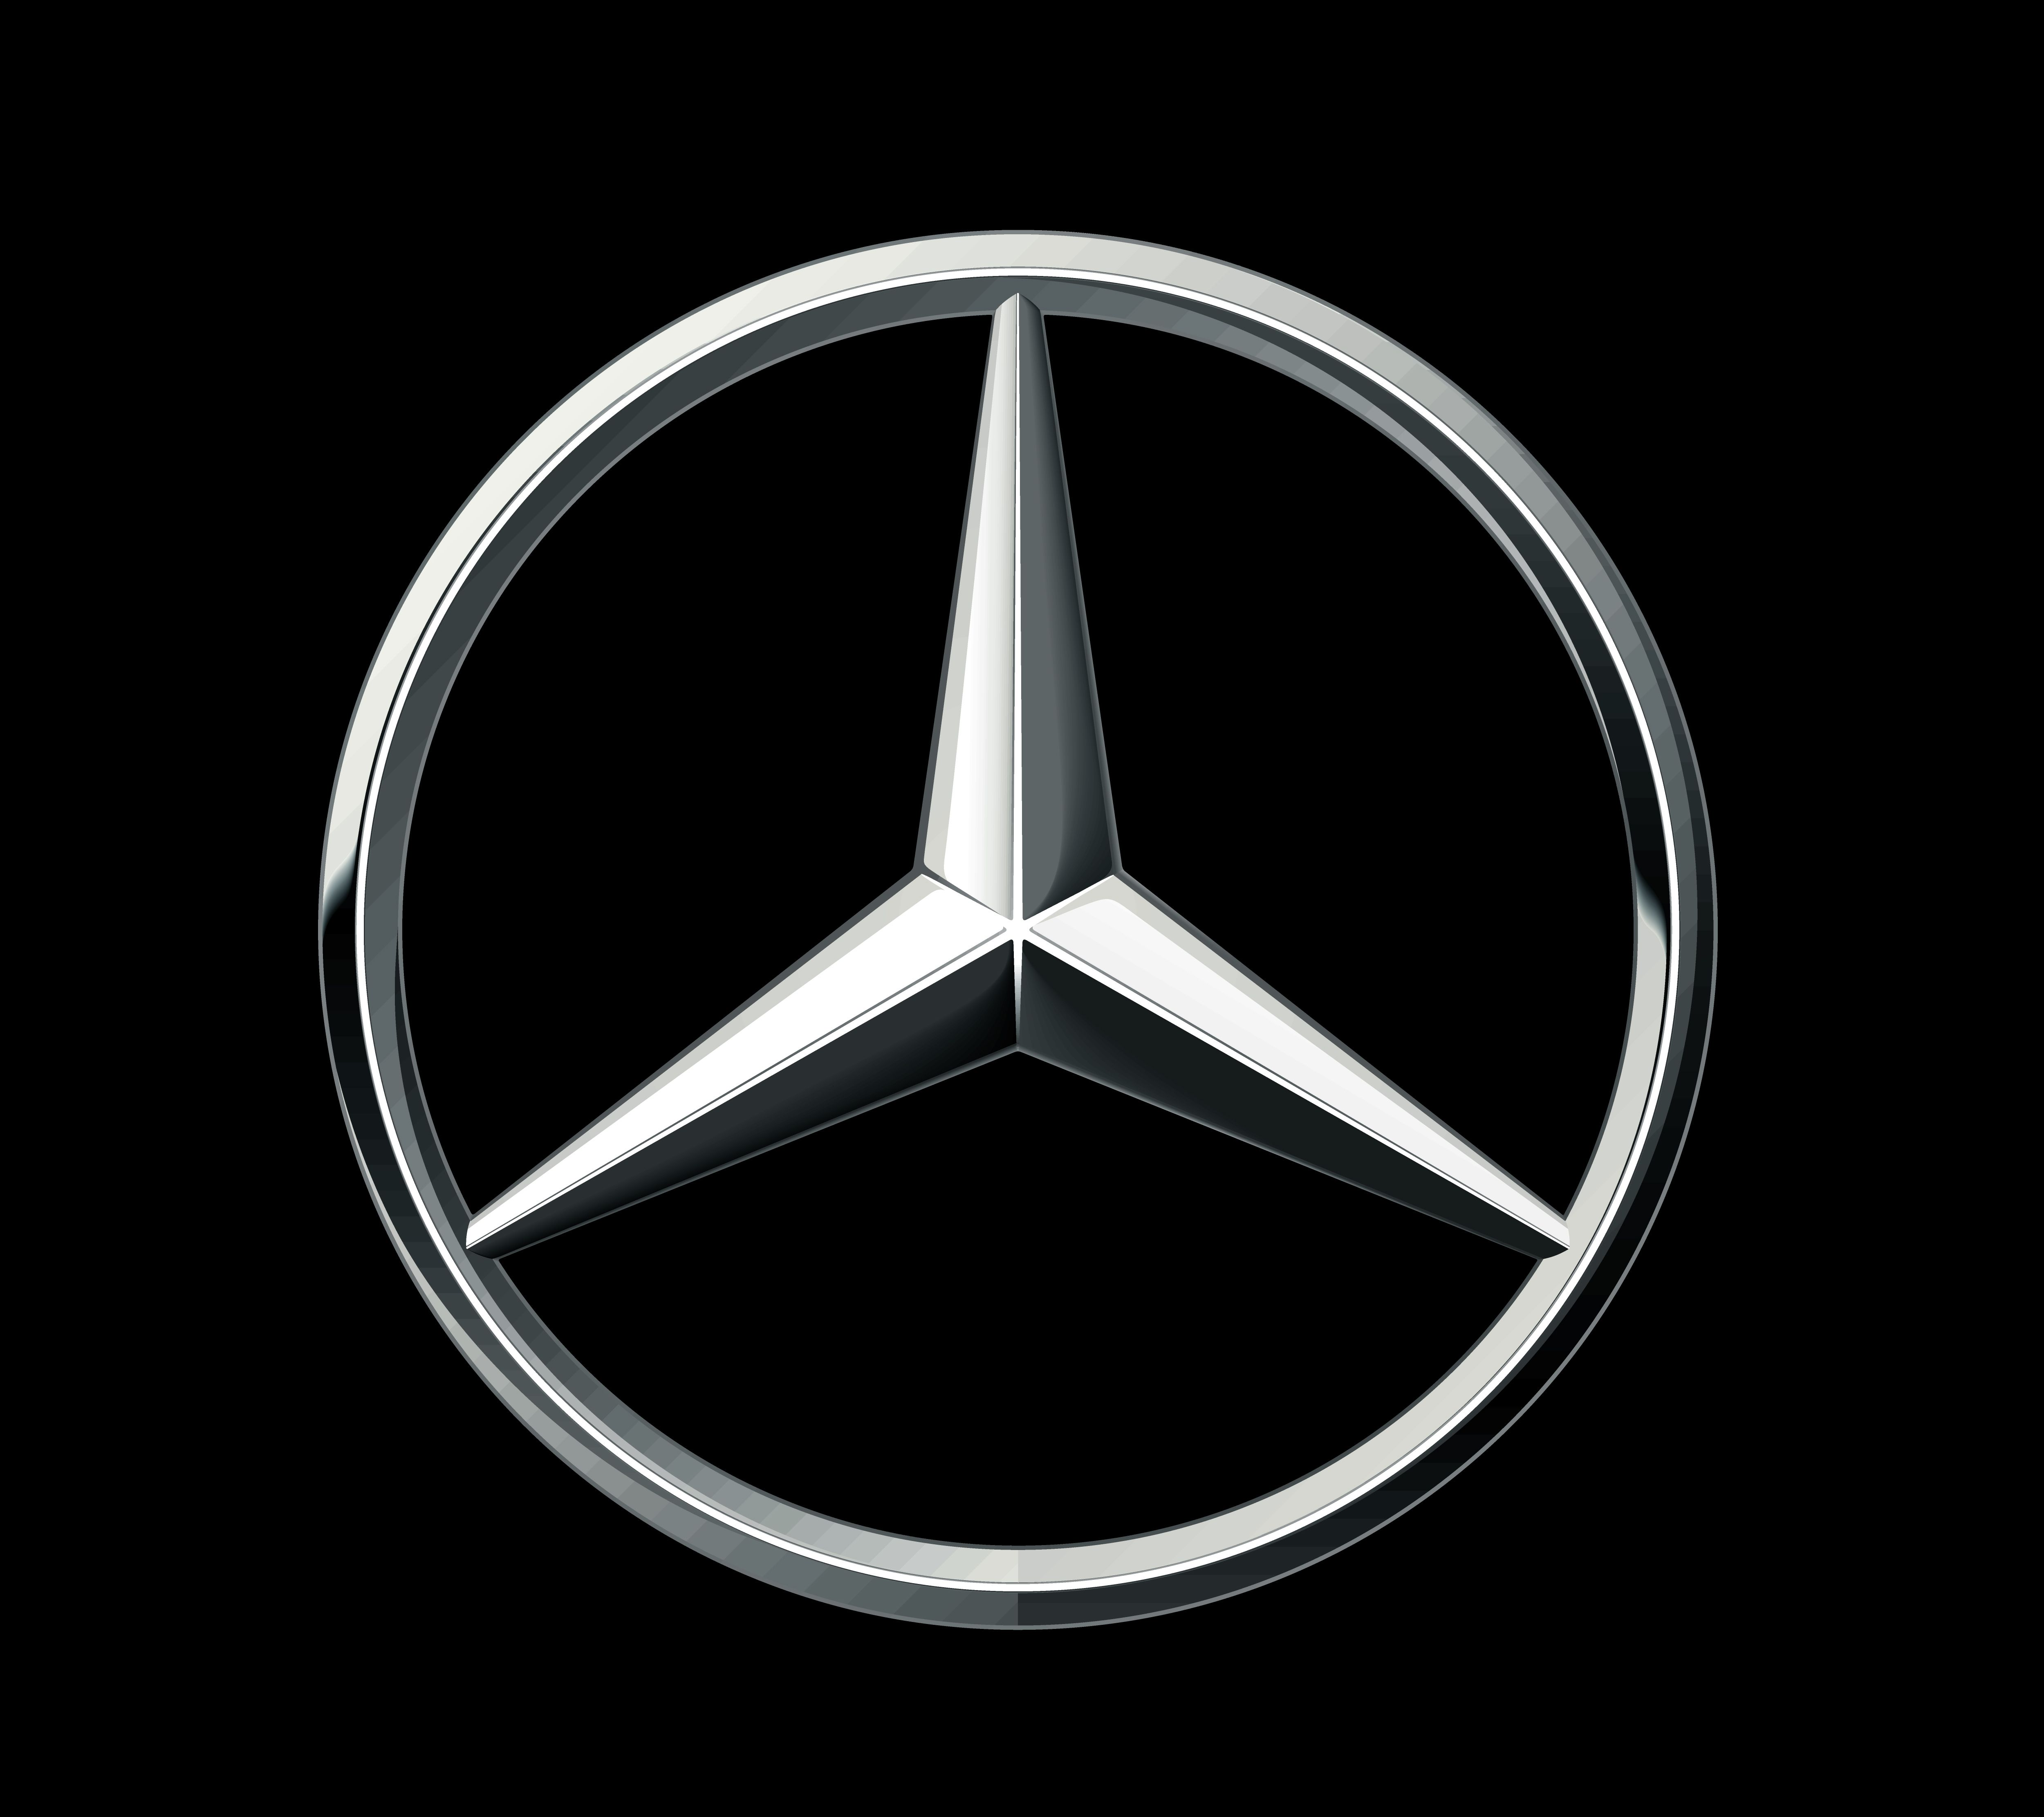 Mercedes Logo Mercedes Benz Car Symbol Meaning And History With